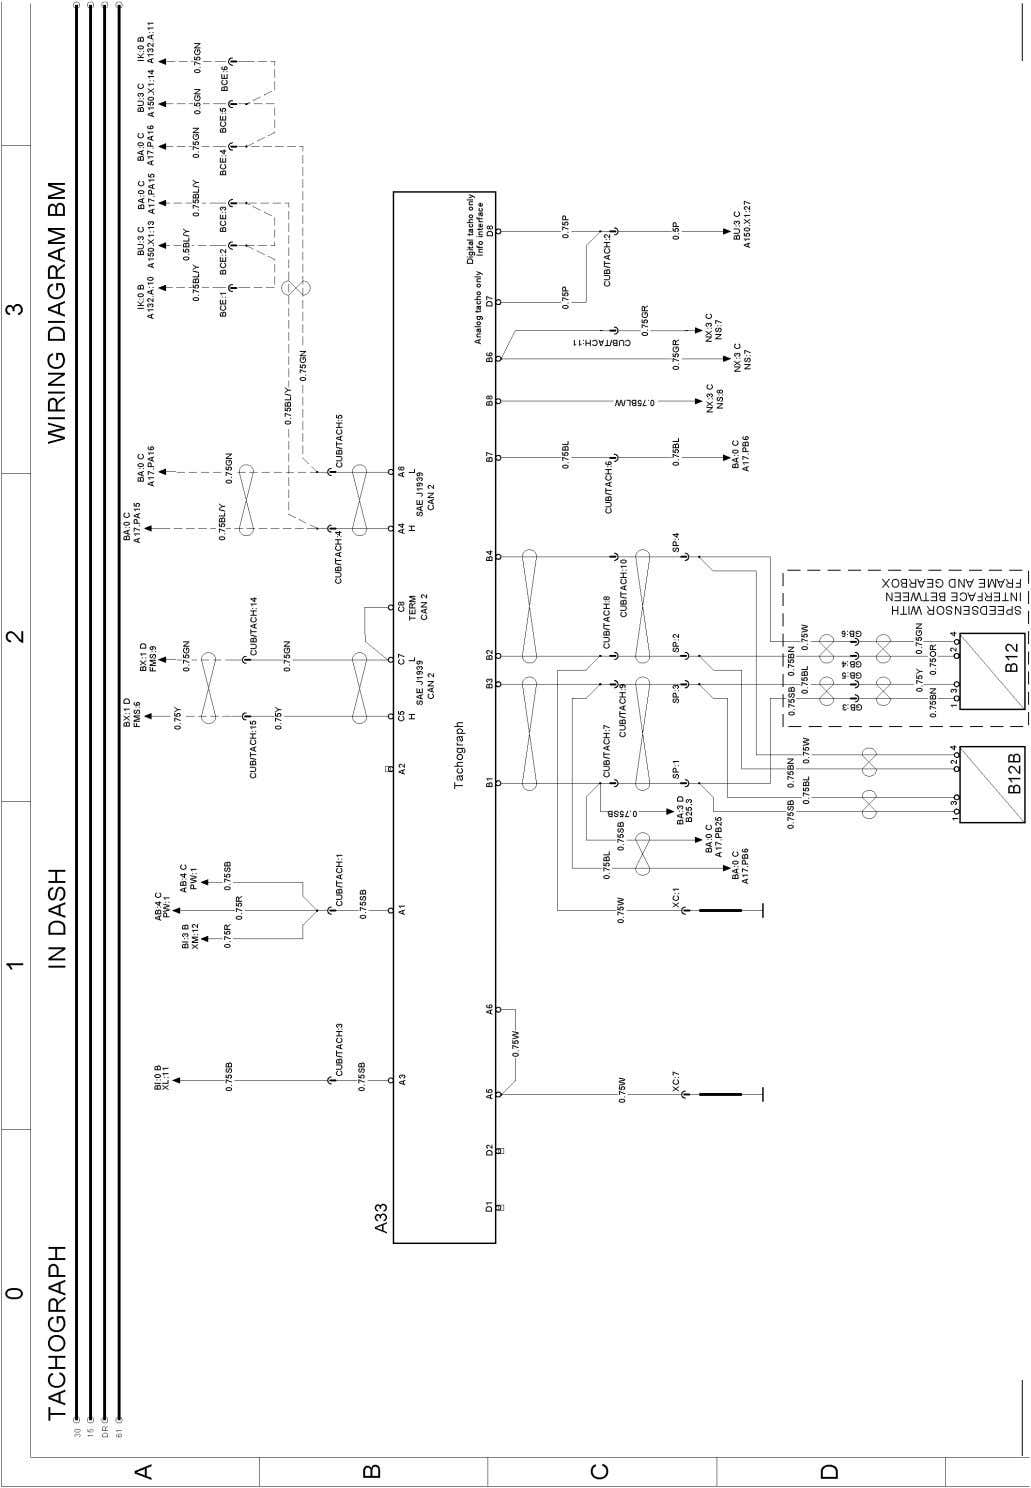 T3075462 Wiring diagram Page 15 (298)